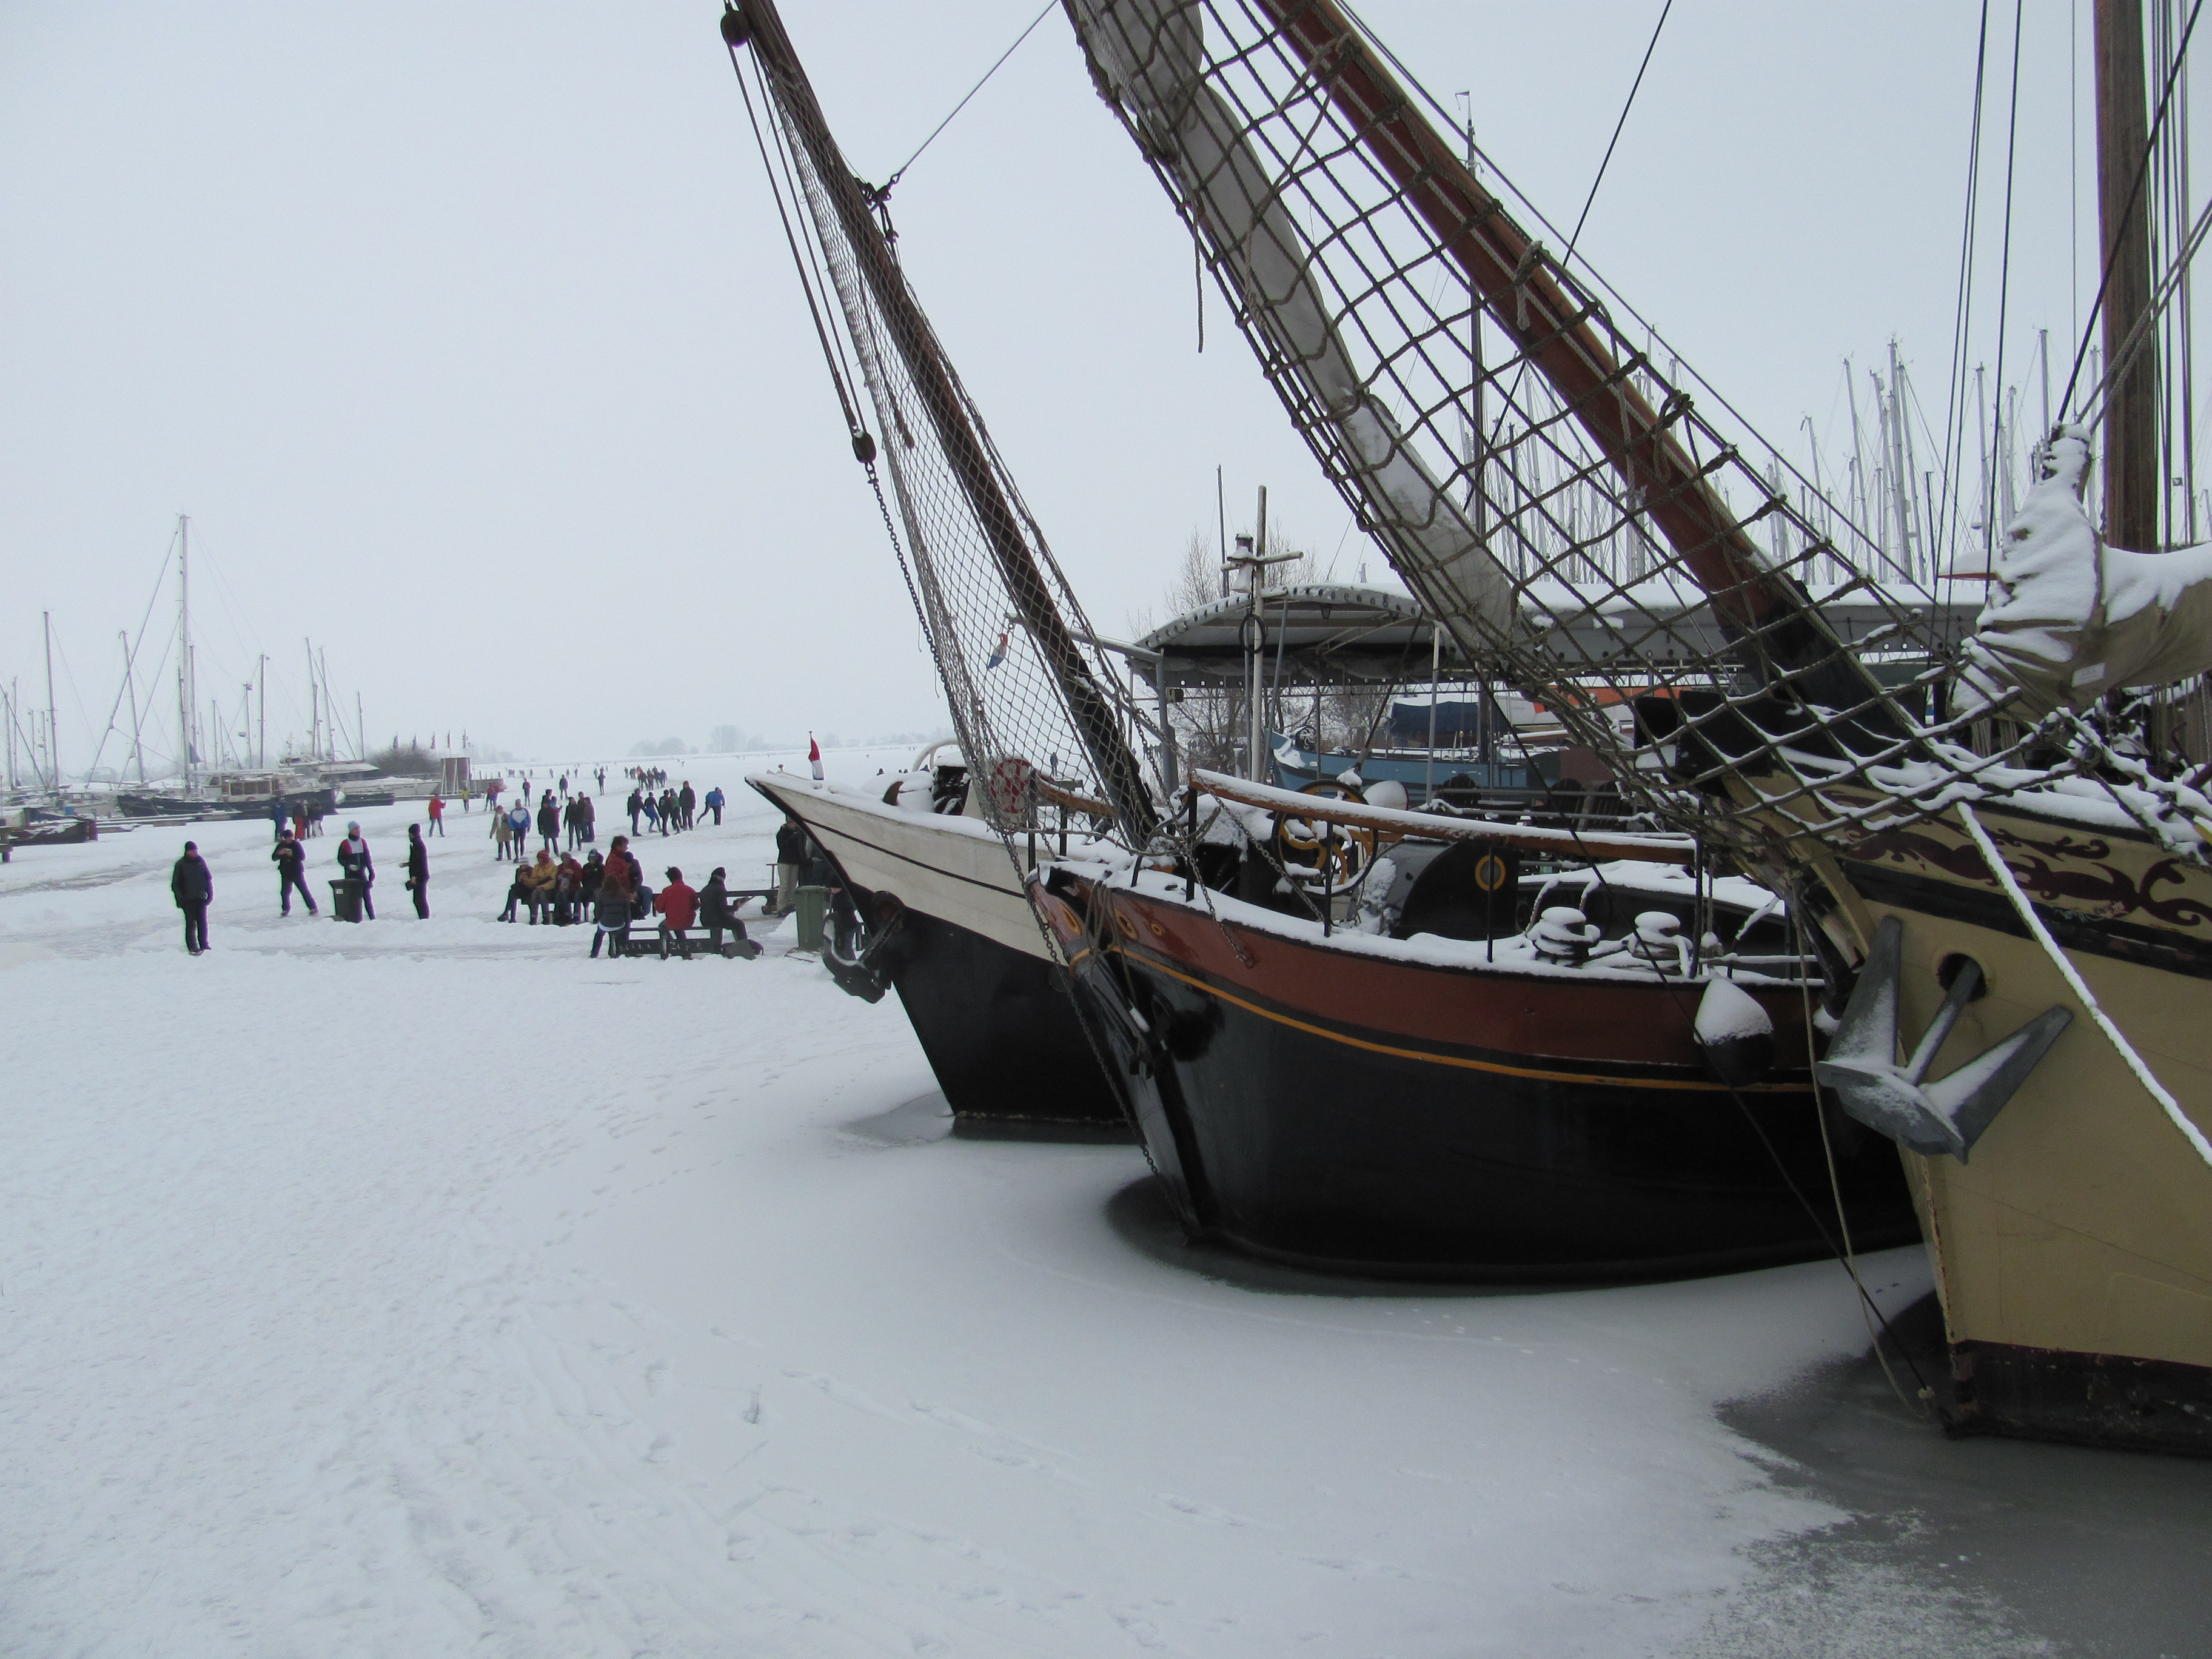 Winter Monnickendam